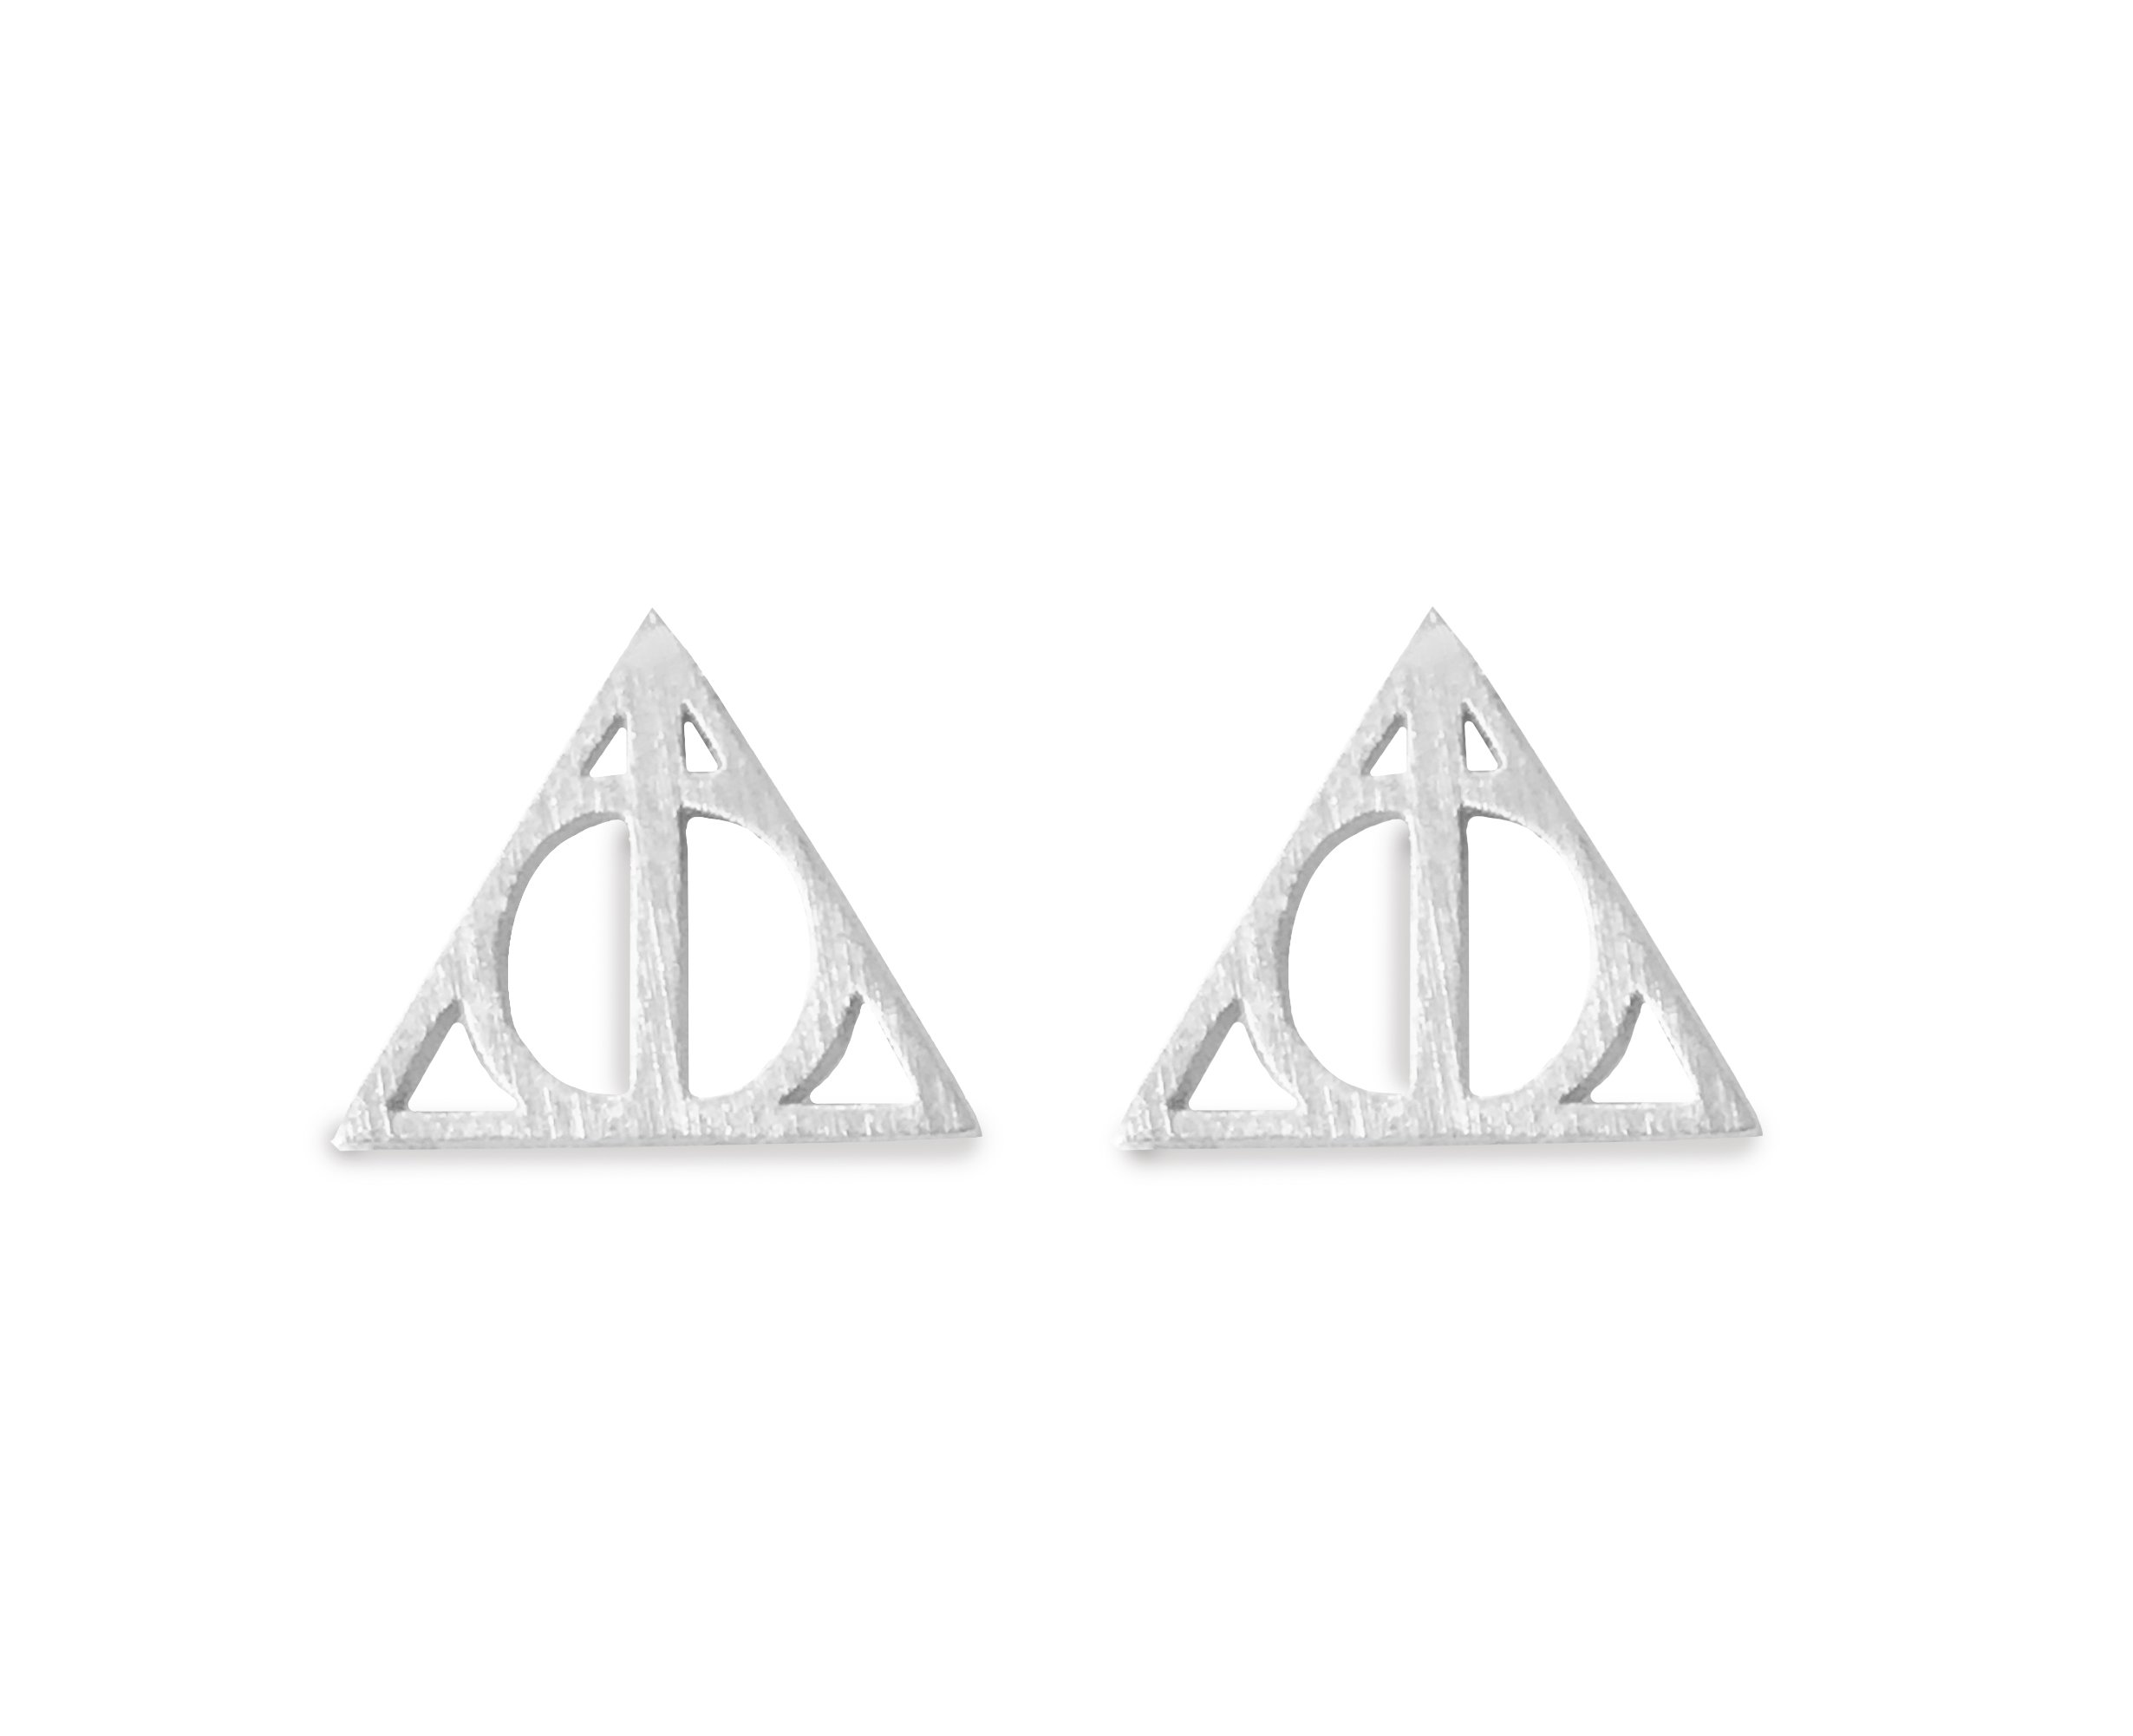 Altitude Boutique Geometric Triangle Stud Pyramid Earrings Punk Earrings (Gold, Silver) (Silver Tone)